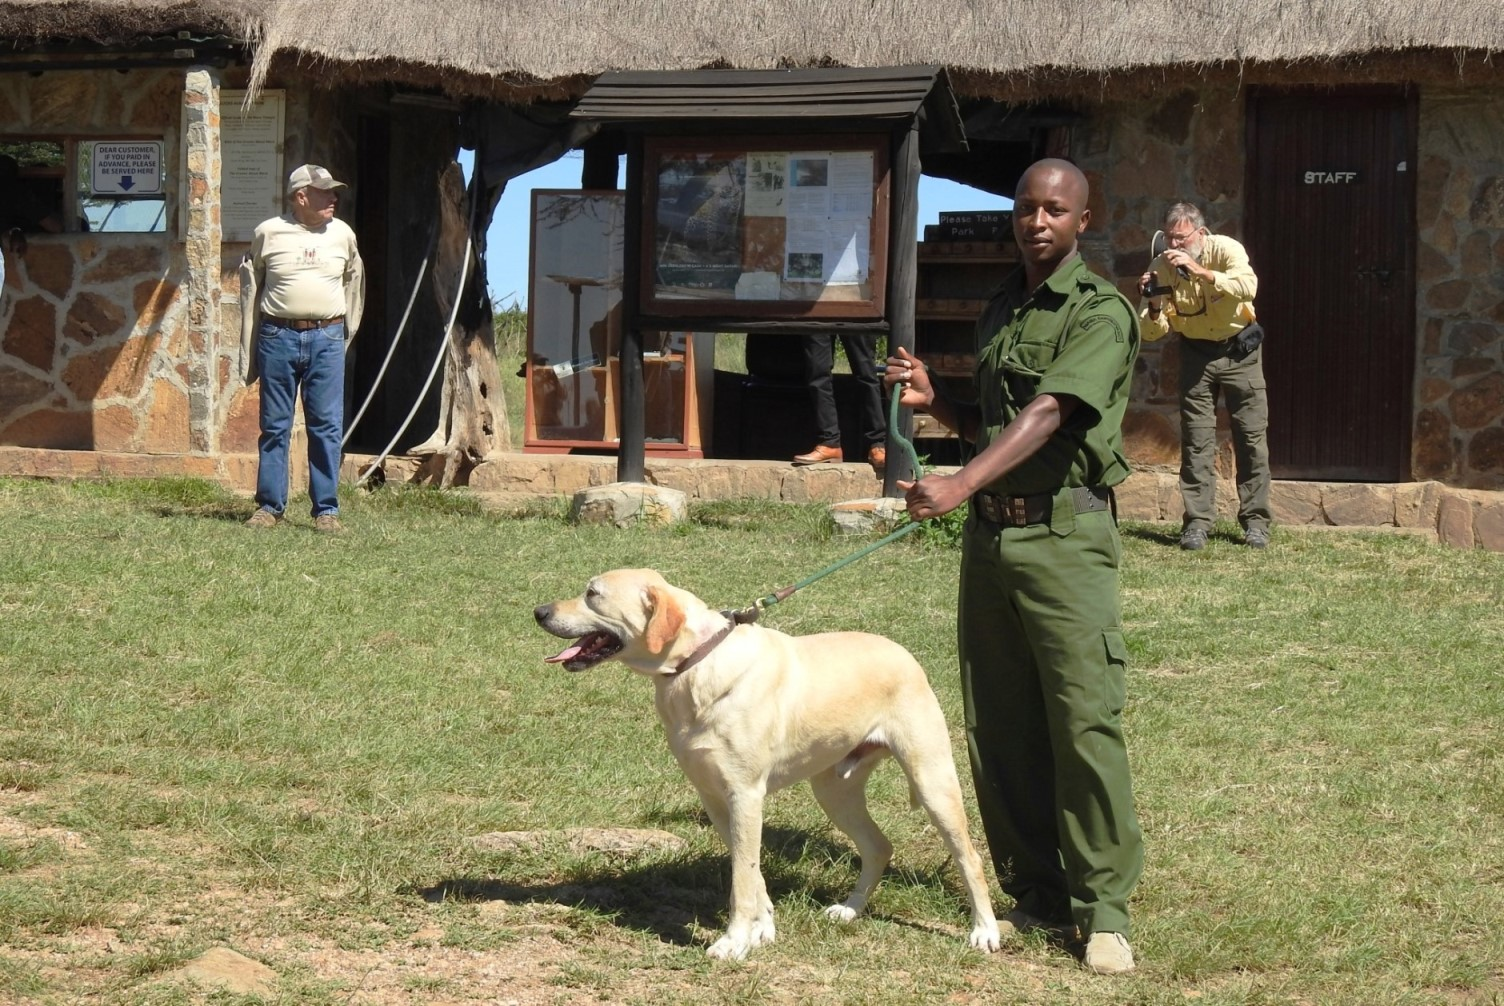 Gage and one of his handlers, ranger Anthony Kangethe, ready to go at the Purungat Bridge gate in Maasai Mara National Reserve.